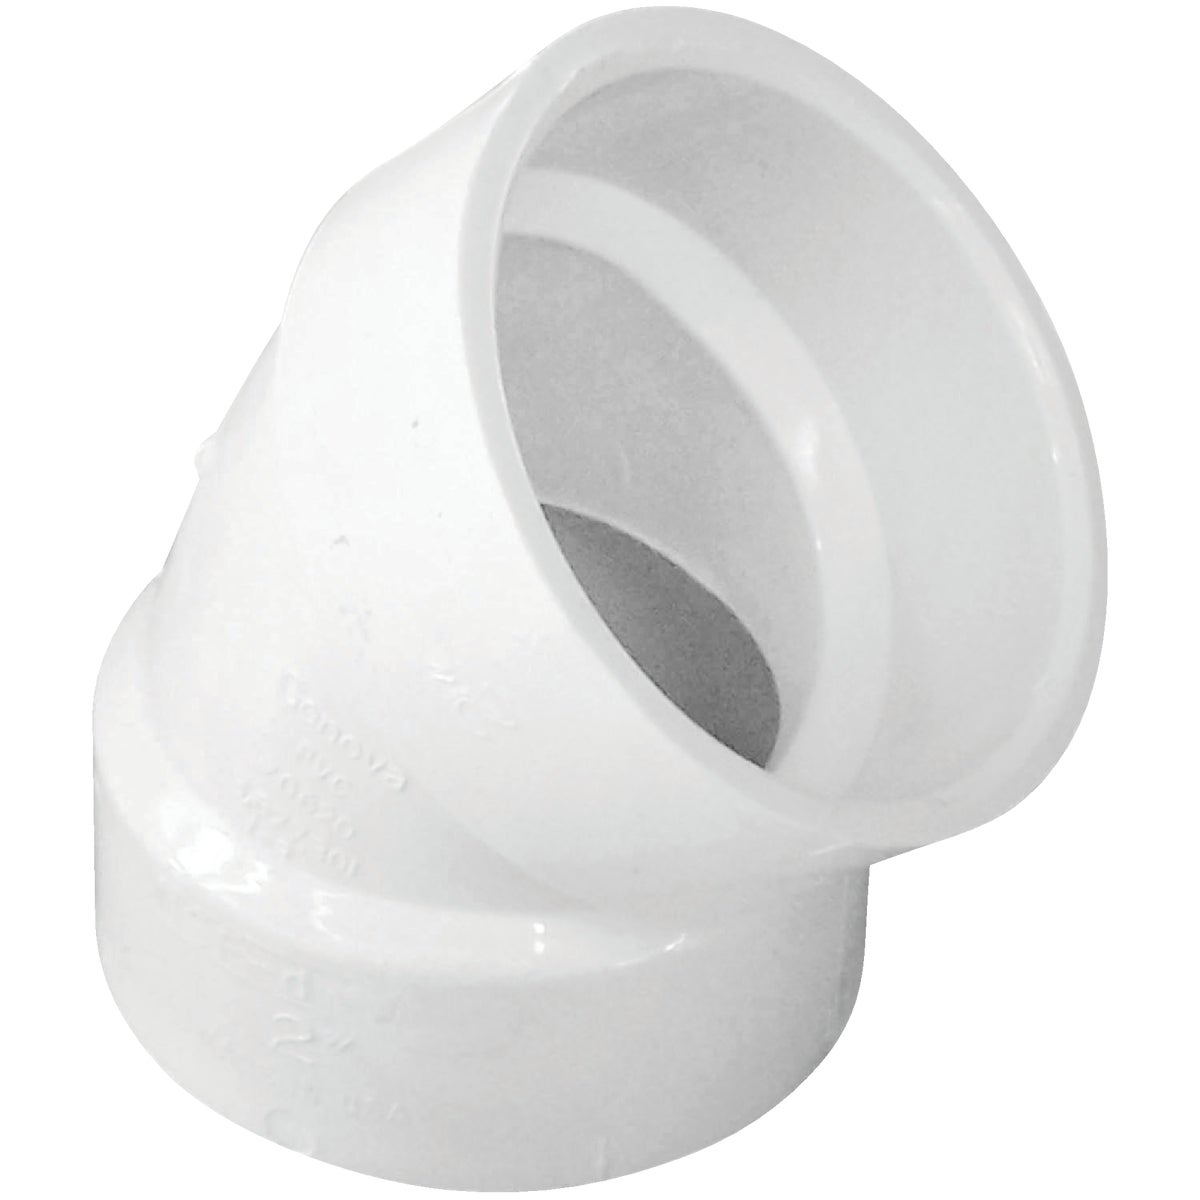 "2"" 45D PVC-DWV ELBOW - 70620 by Genova Inc  Pvc Dwv"